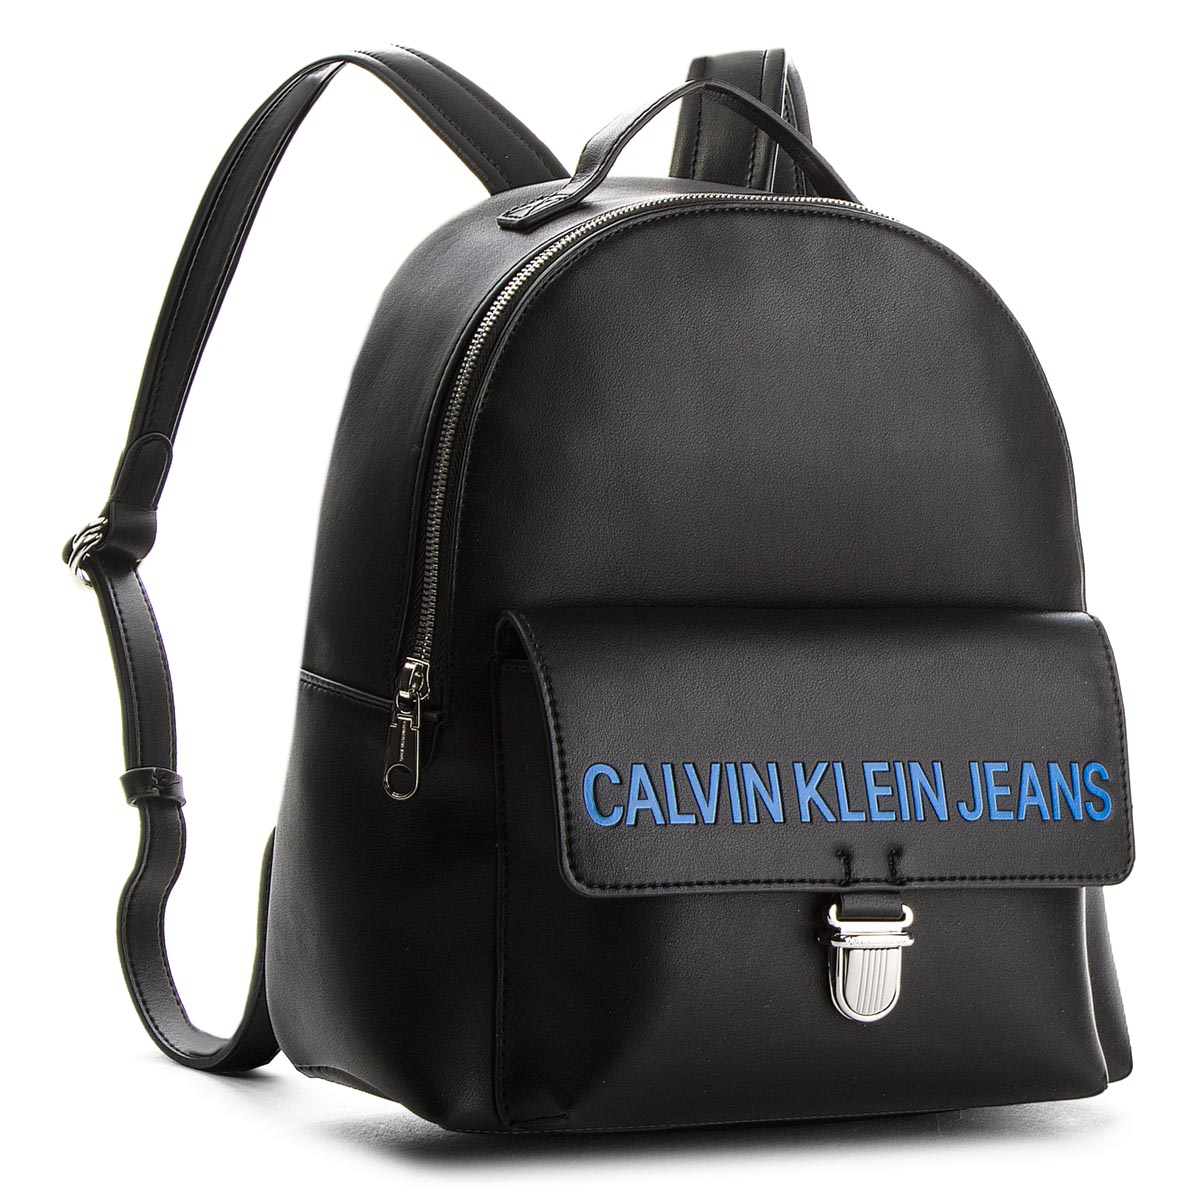 Rucsac CALVIN KLEIN JEANS - Sculpted Cp Backpack K40K400386 001